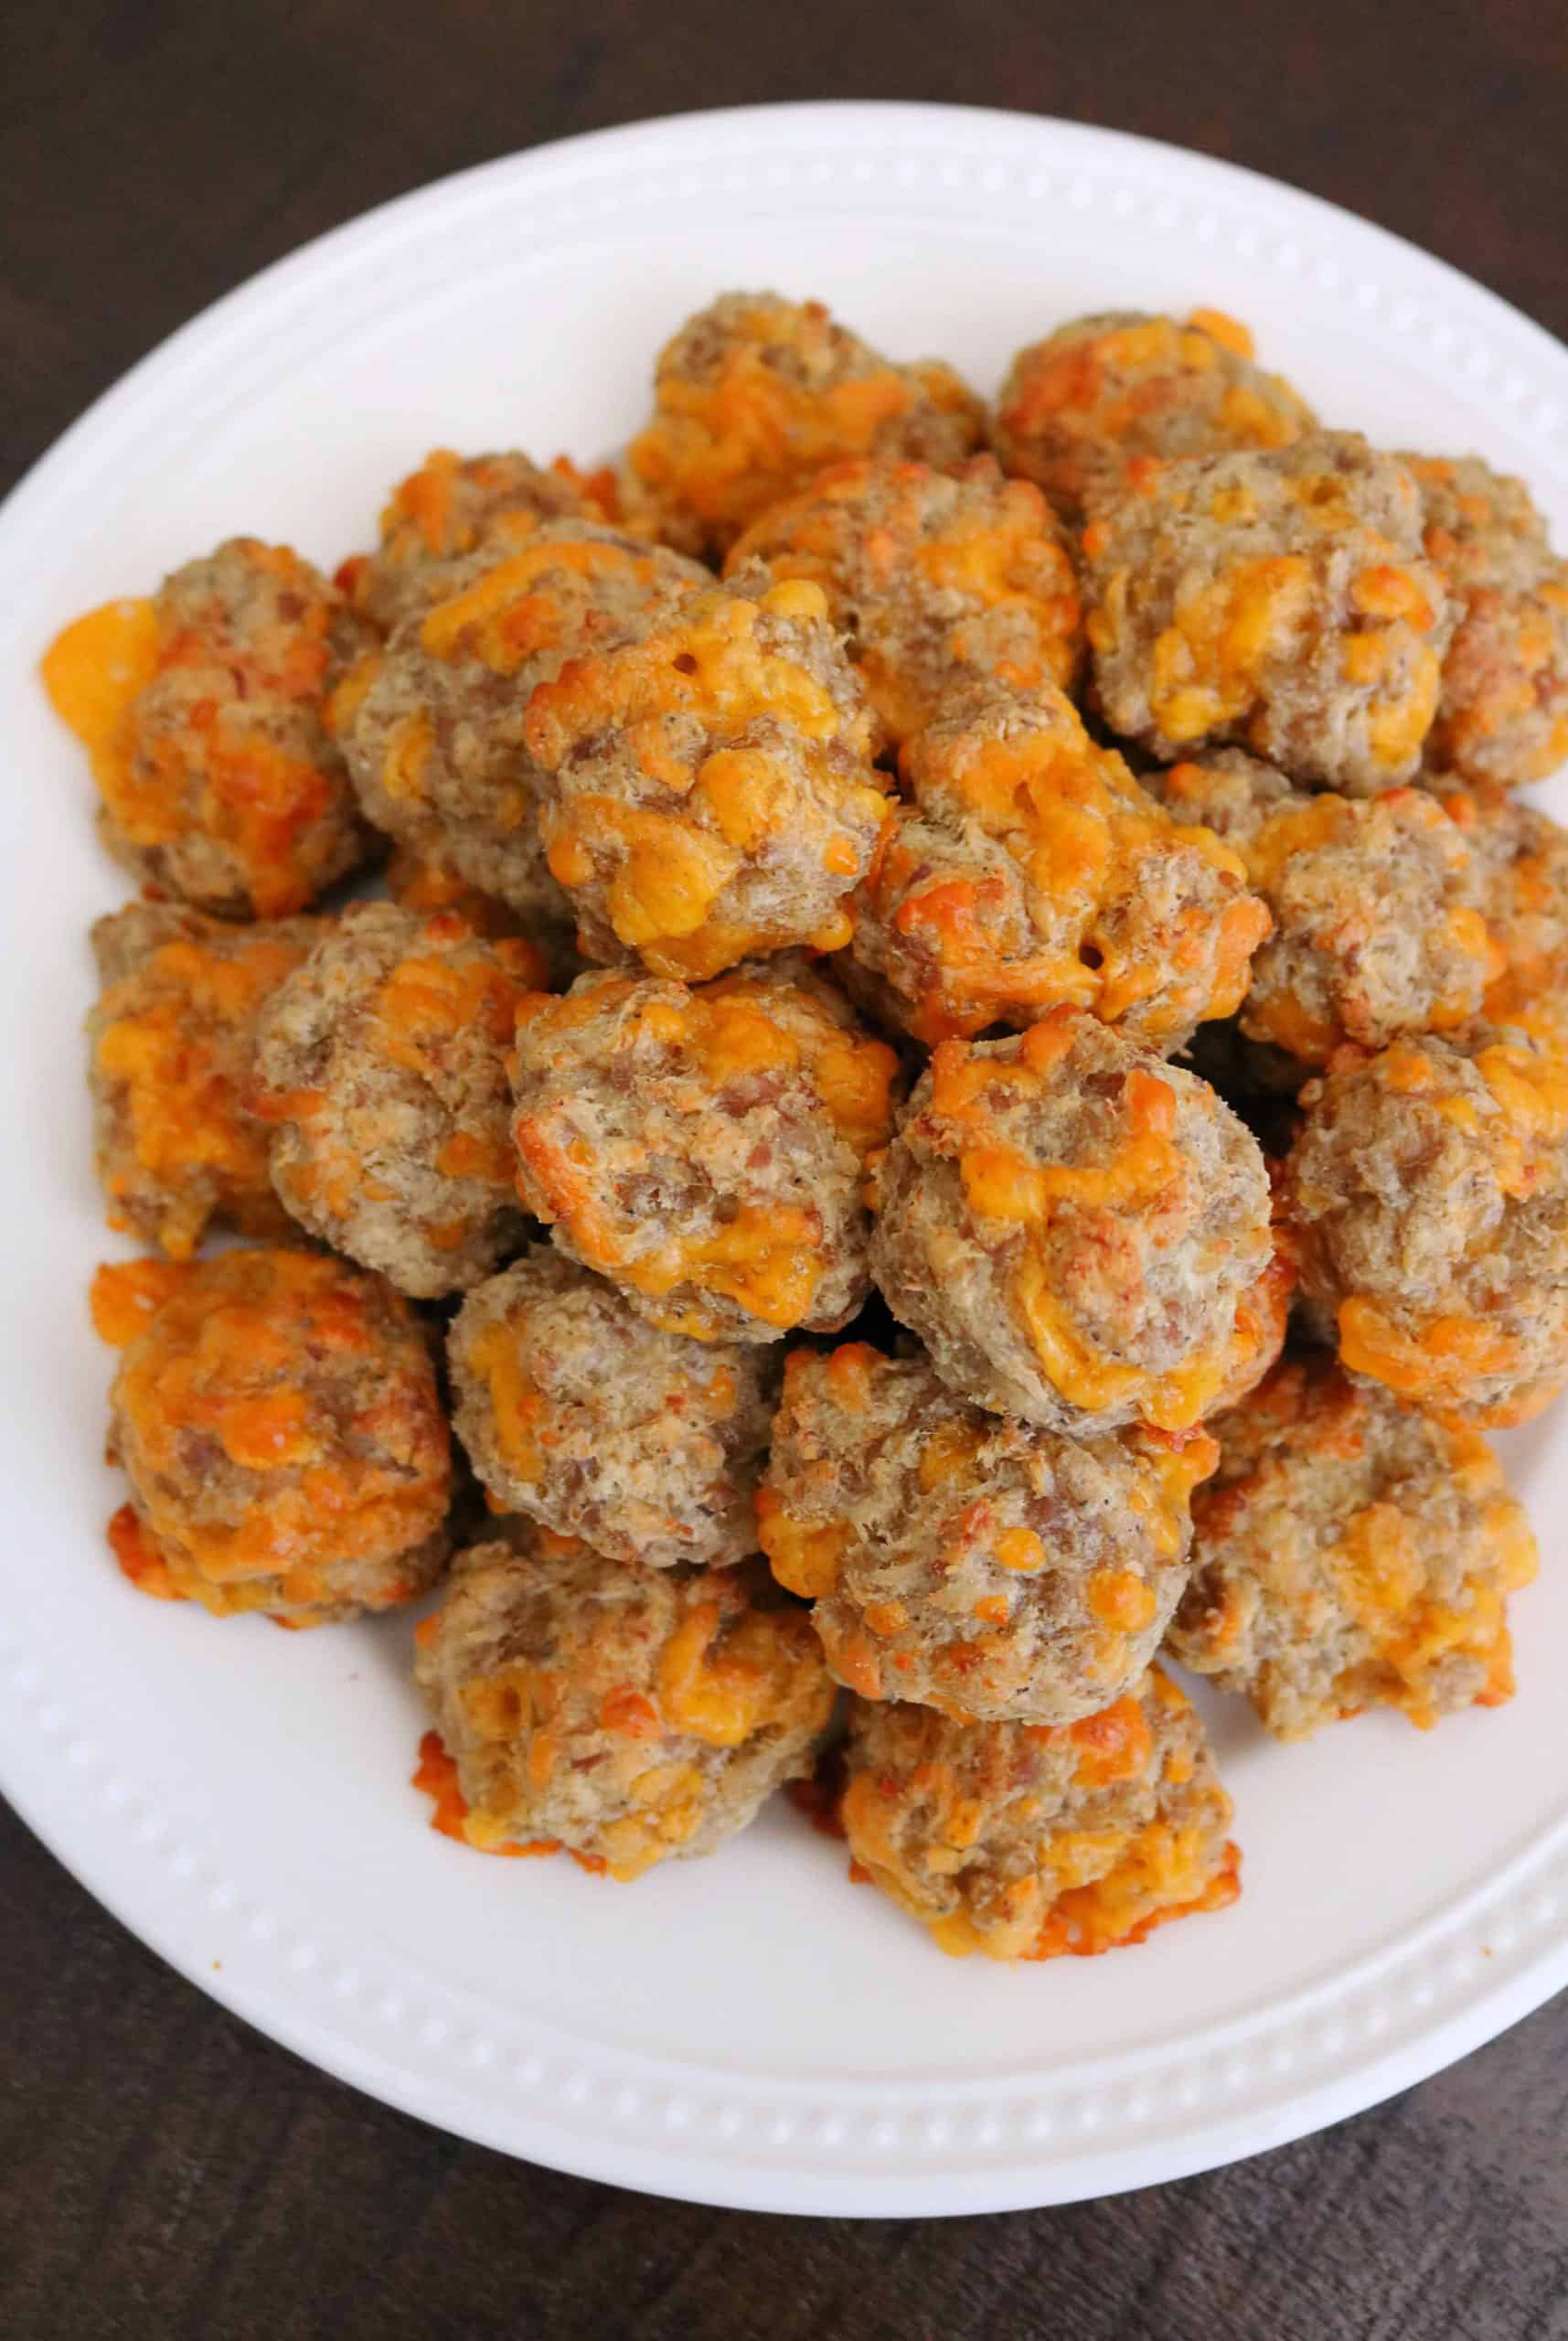 Forget boring sausage balls and try my Best Cream Cheese Sausage Balls Recipe for the best sausage balls ever! These easy sausage and cream cheese balls are made with two ground sausages, bisquick, flavorful spices, cream cheese, and cheddar cheese. So delicious, cheesy, and the perfect easy appetizer, party food, or finger food! #sausageballs #creamcheesesausageballs #appetizer #fingerfood #easyrecipe